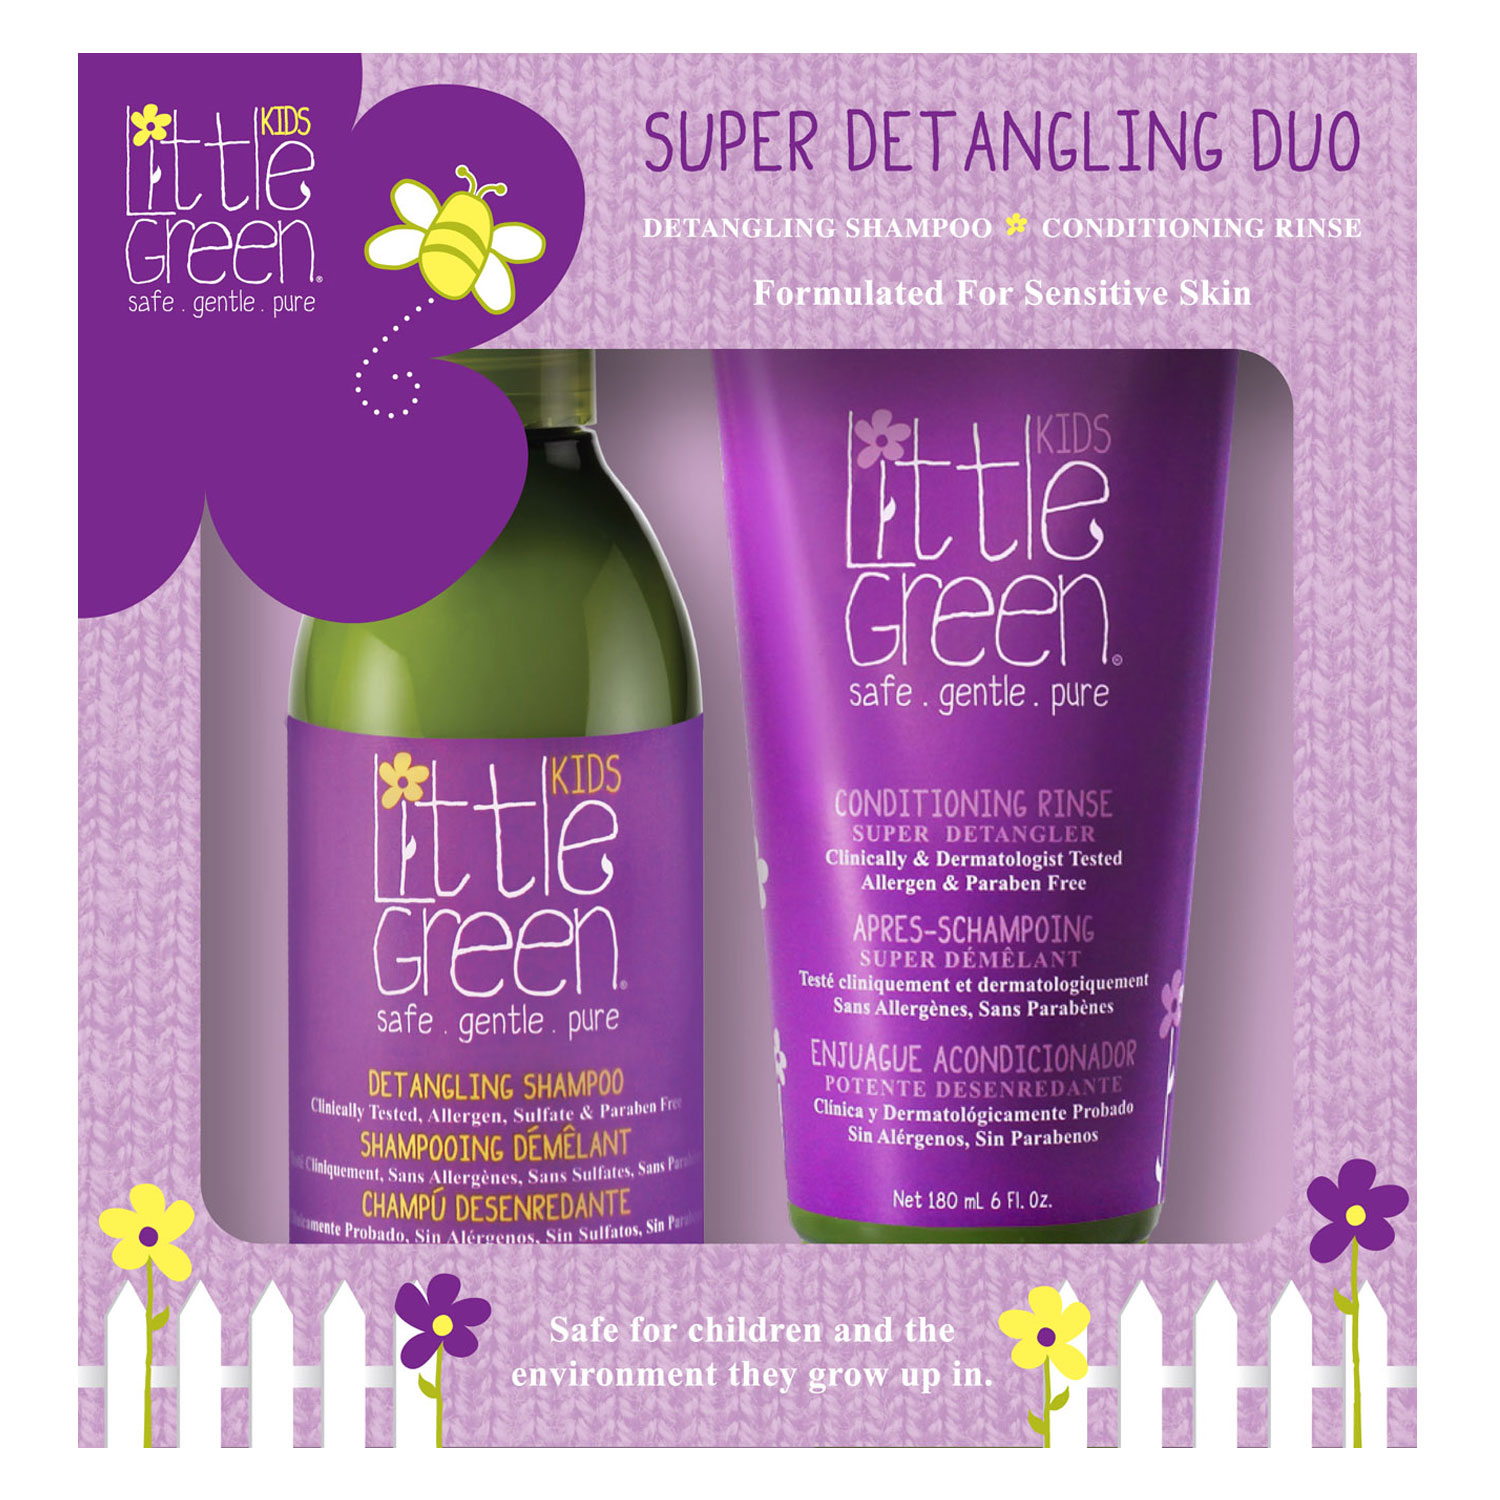 Little Green Kids - Super Detangling Duo